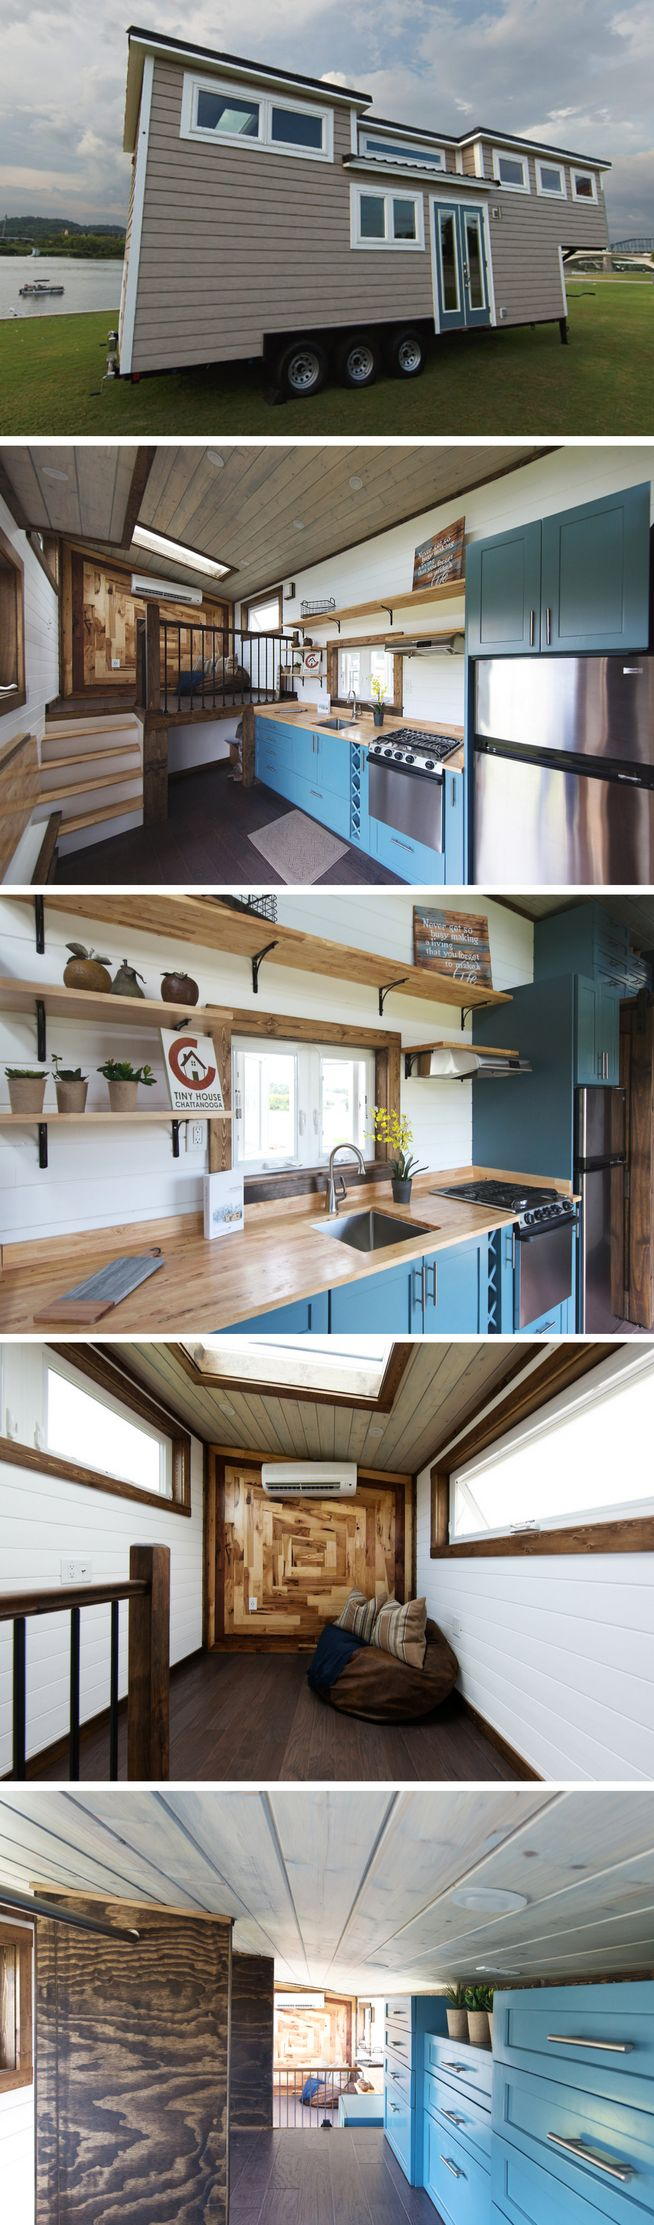 """The Lookout: a 299 sq ft tiny home by Tiny House Chattanooga. The home was voted """"Best in Show"""" at the 2016 Tiny House Jamboree and is now available for sale!"""